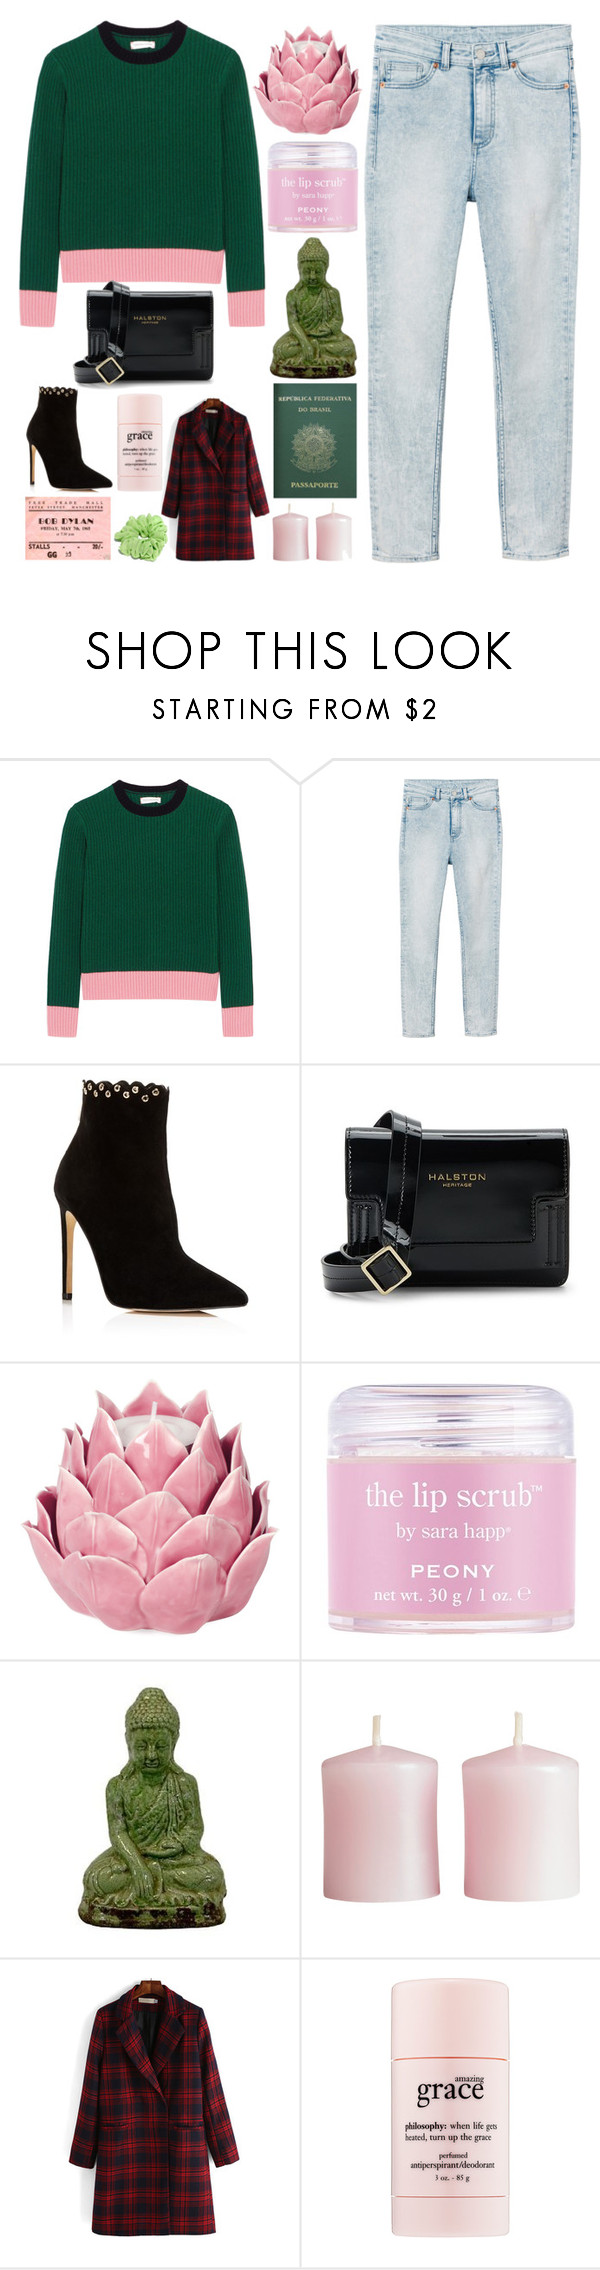 """Plaid coat"" by anam53046 ❤ liked on Polyvore featuring Chinti and Parker, Monki, Raye, Halston Heritage, Zara Home, Sara Happ, Urban Trends Collection, H&M, philosophy and Passport"